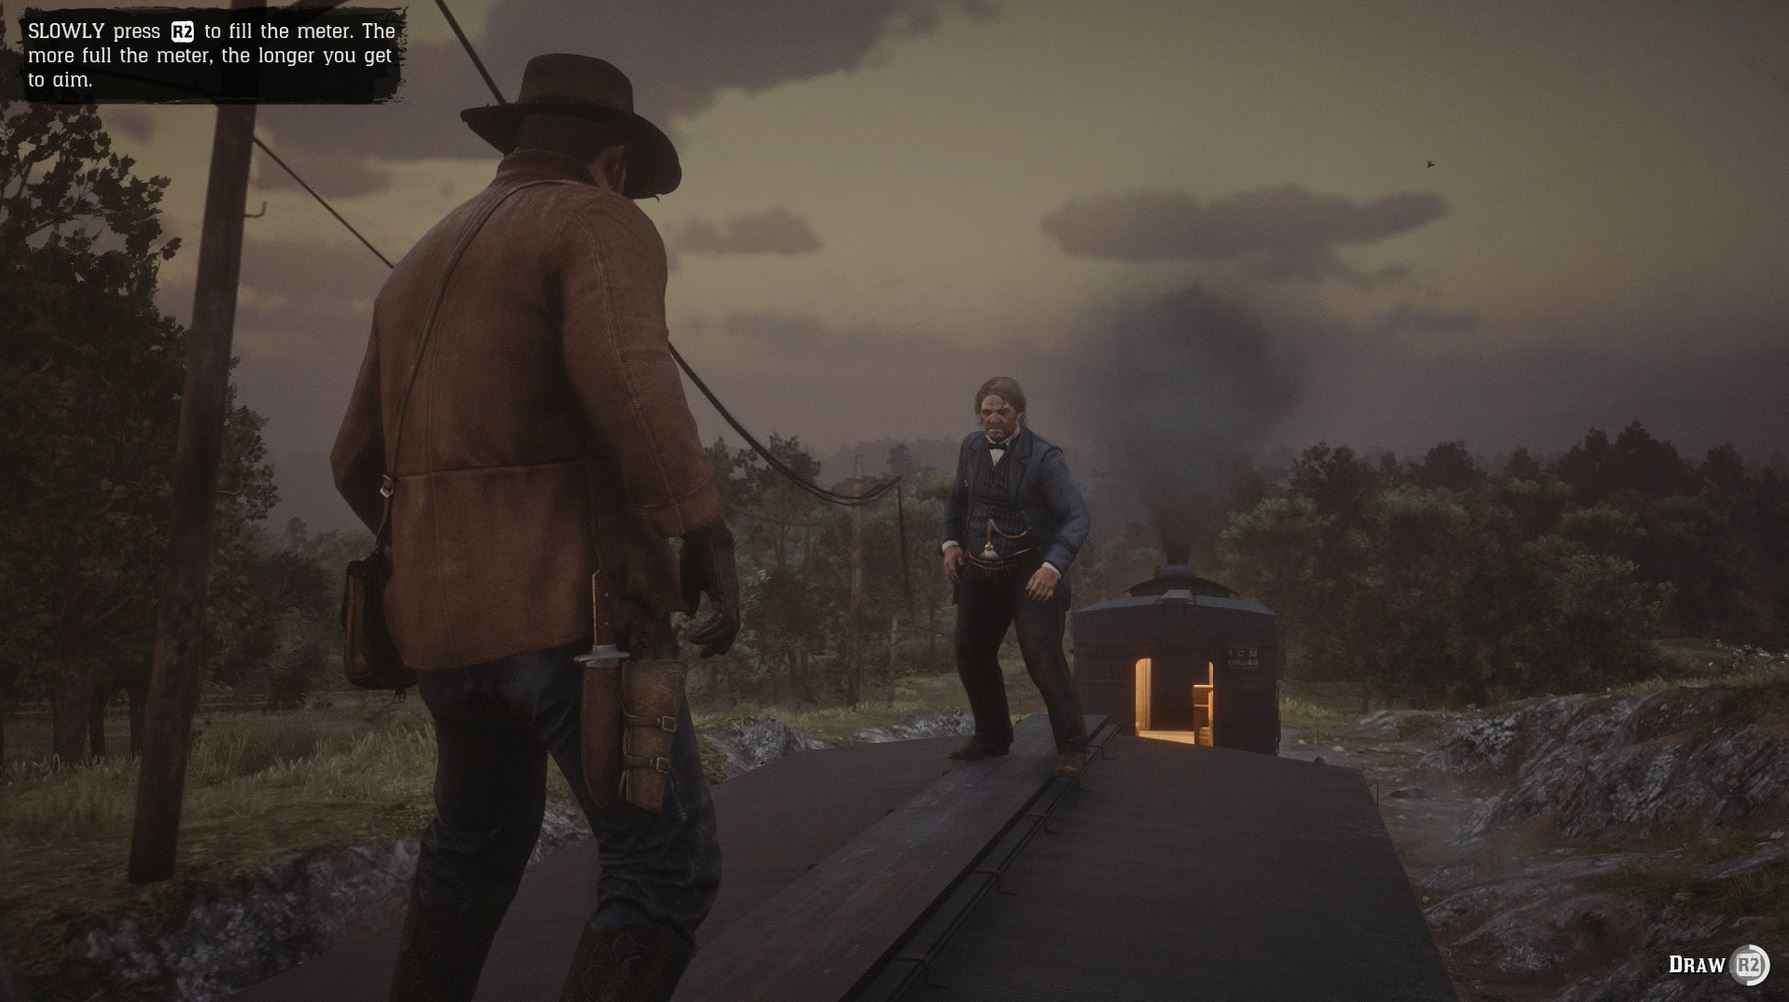 In Red Dead Redemption 2 Dueling is a prominent mechanic.